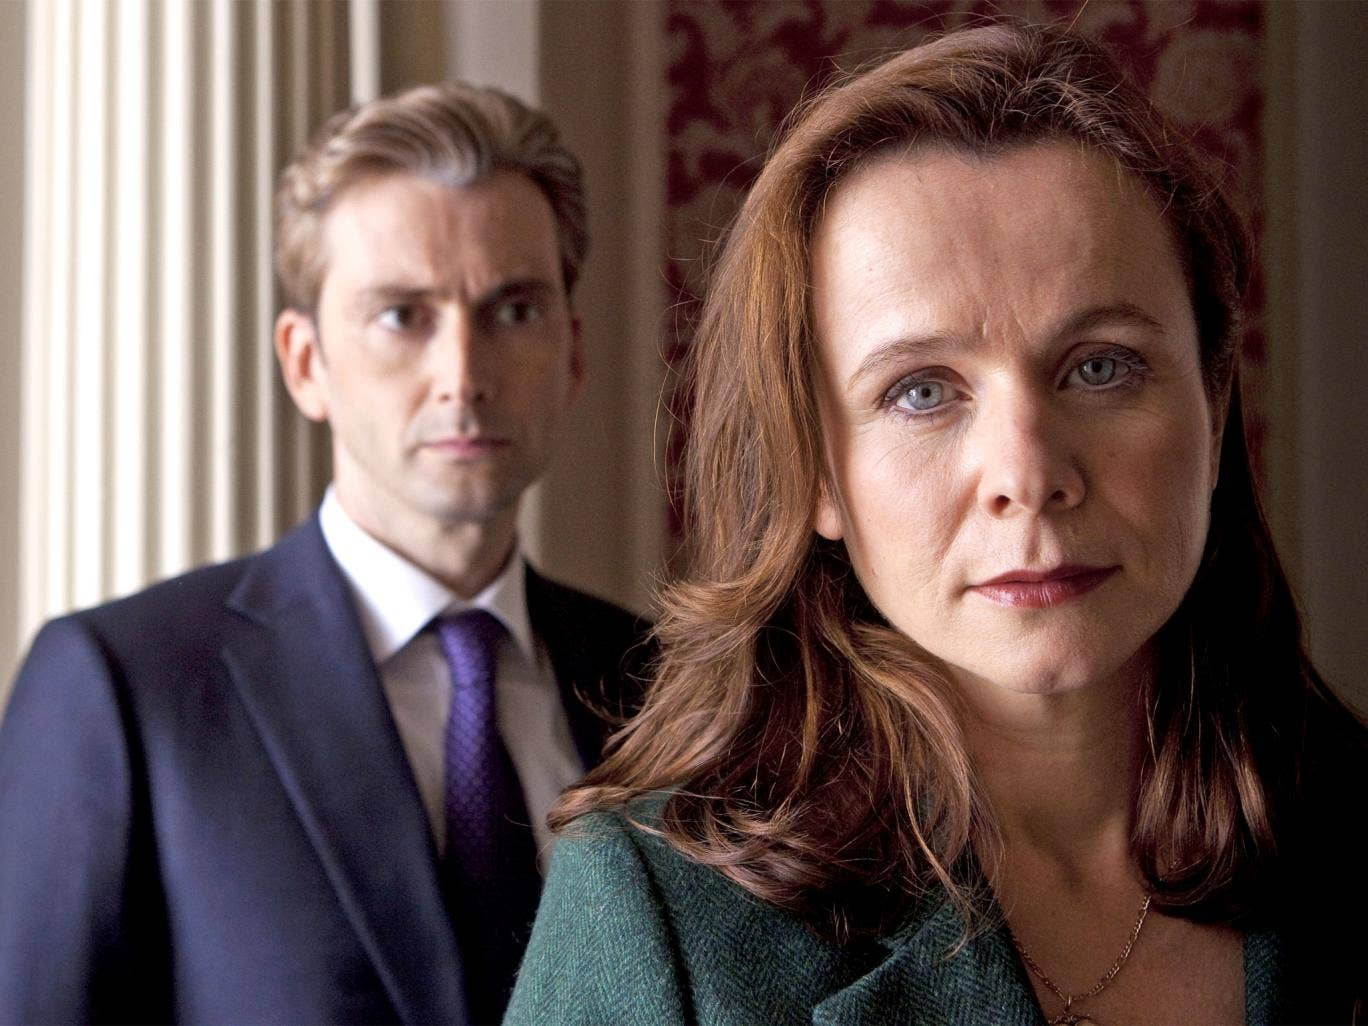 The eyes have it: David Tennant and Emily Watson in 'The Politician's Husband'